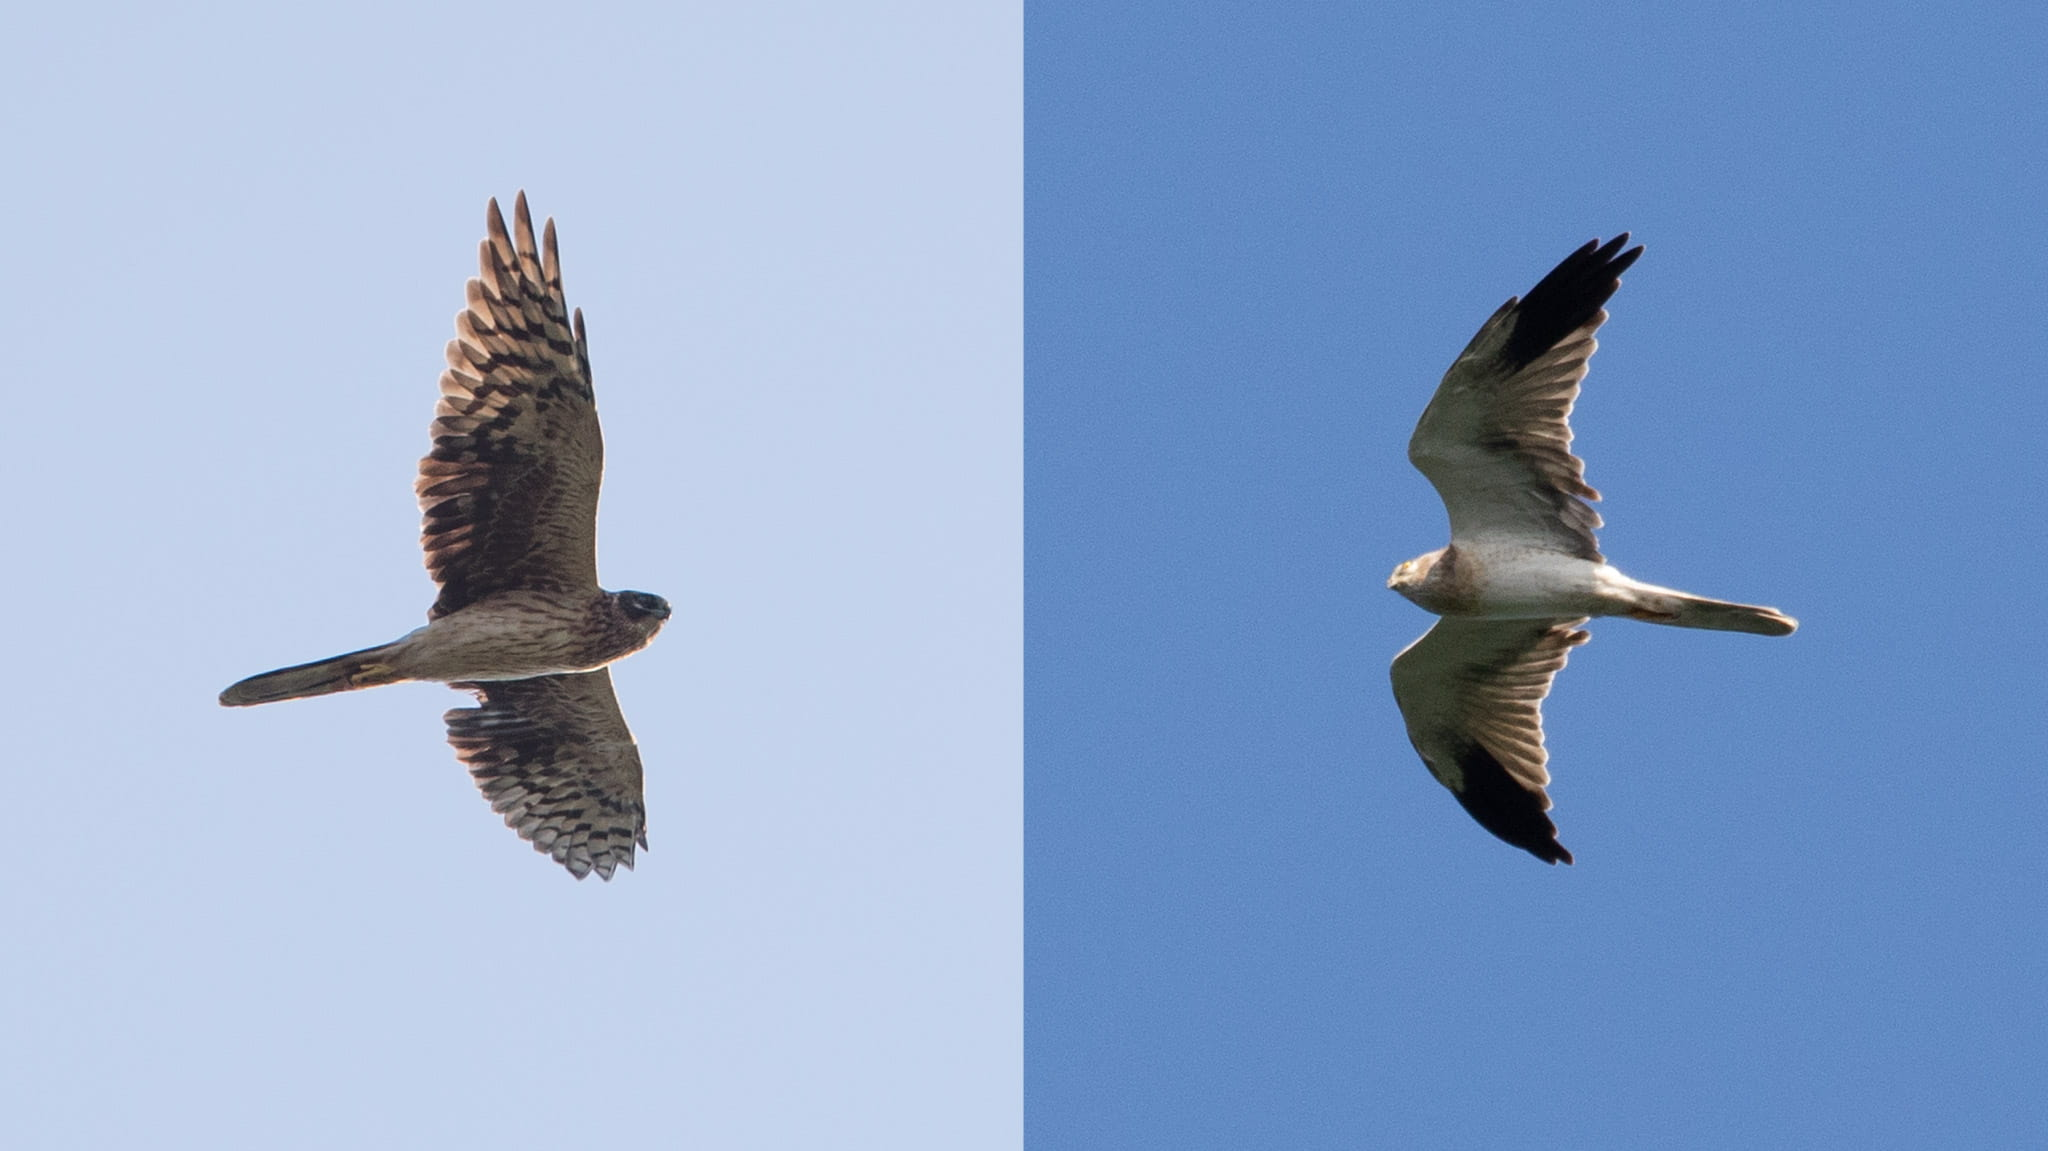 Immature Pallid female (left) and immature Pallid male (right), both still moulting their secondaries: a strange phenomenon we are not used to recording so often. Photos by Frits Hoogeveen (left) and Bart Hoekstra (right).